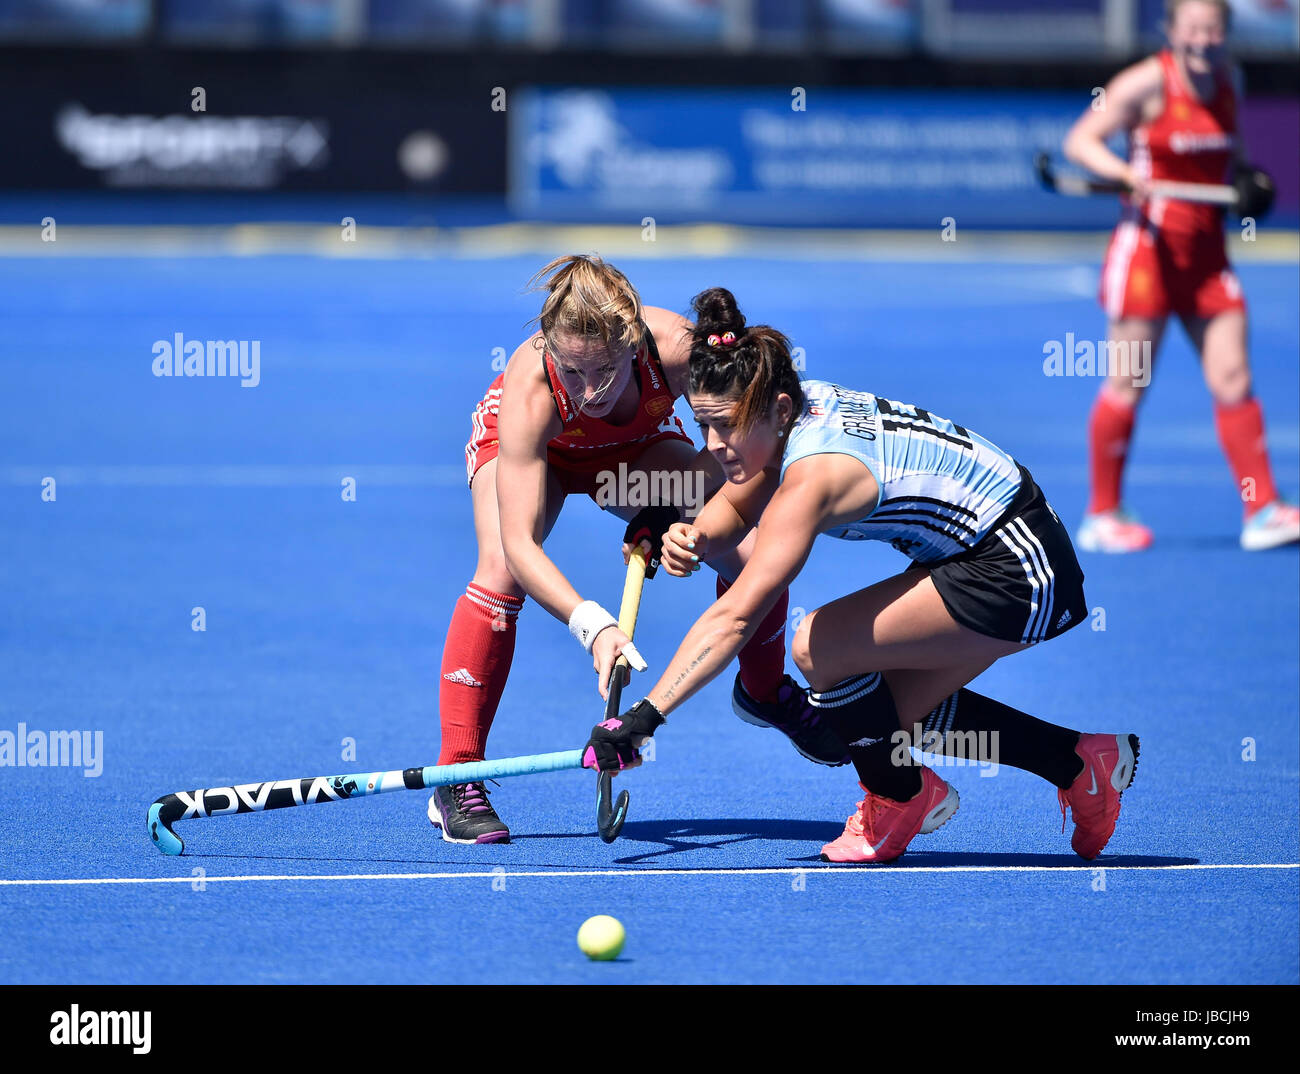 LONDON ENGLAND - June 10, 2017: Shona McCalin (ENG) clashed with Maria Granatto (ARG) during 2017 Investec International - Stock Image